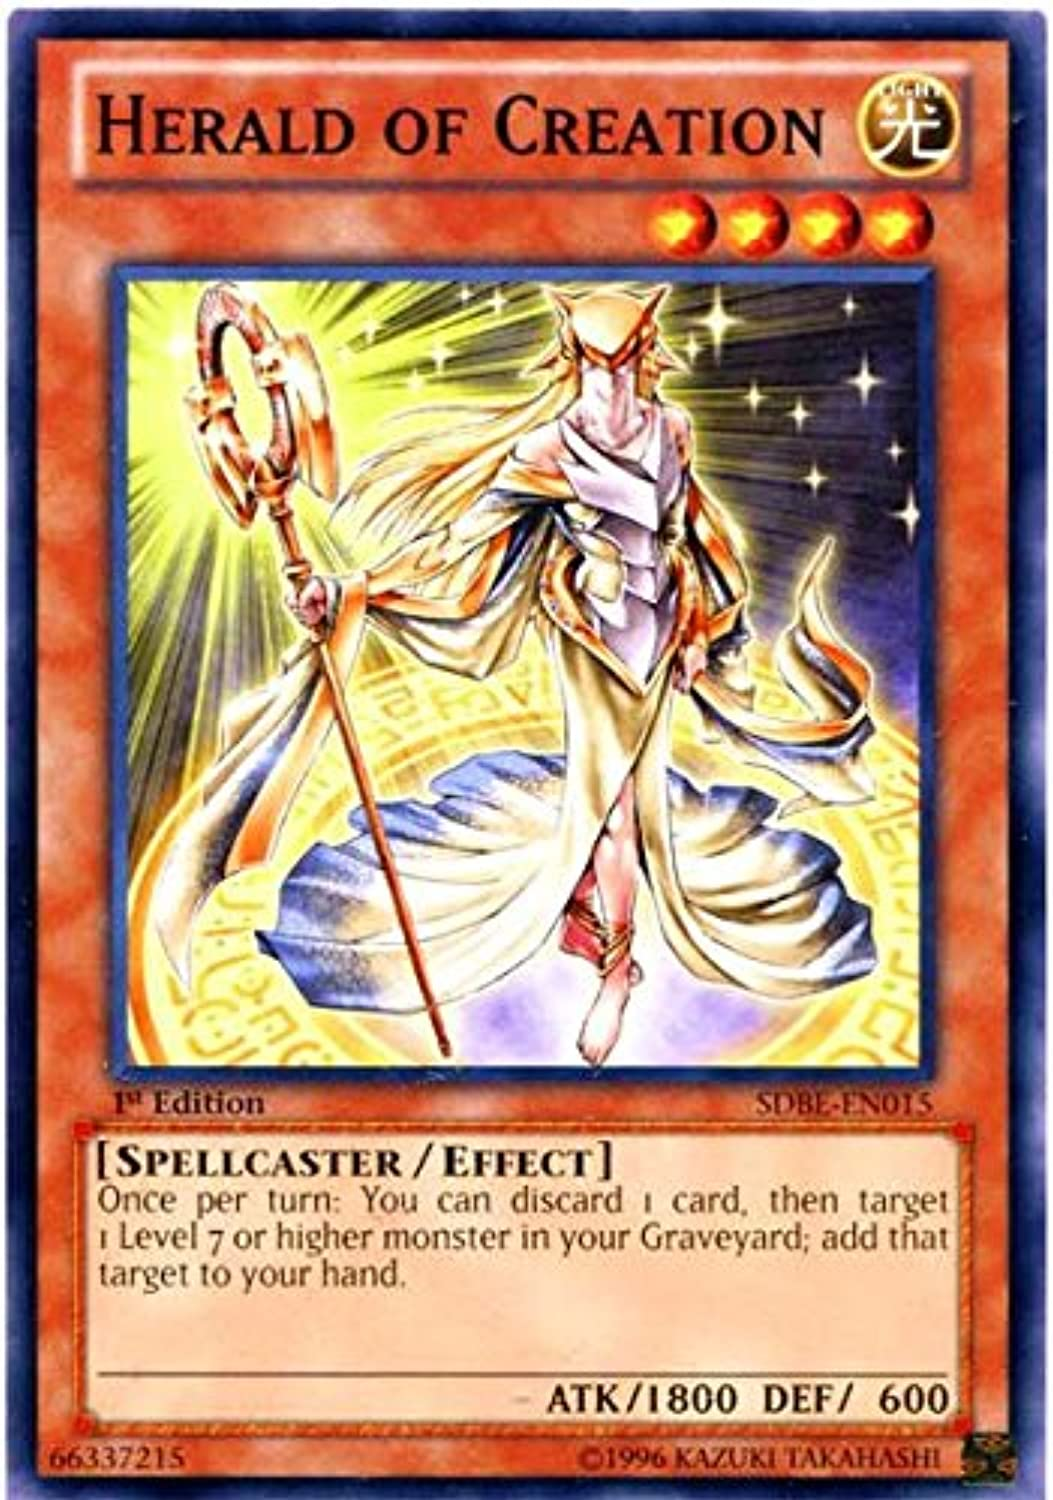 YuGiOh     Herald of Creation (SDBEEN015)  Structure Deck  Saga of blueeEyes White Dragon  1st Edition  Common 55ac1c